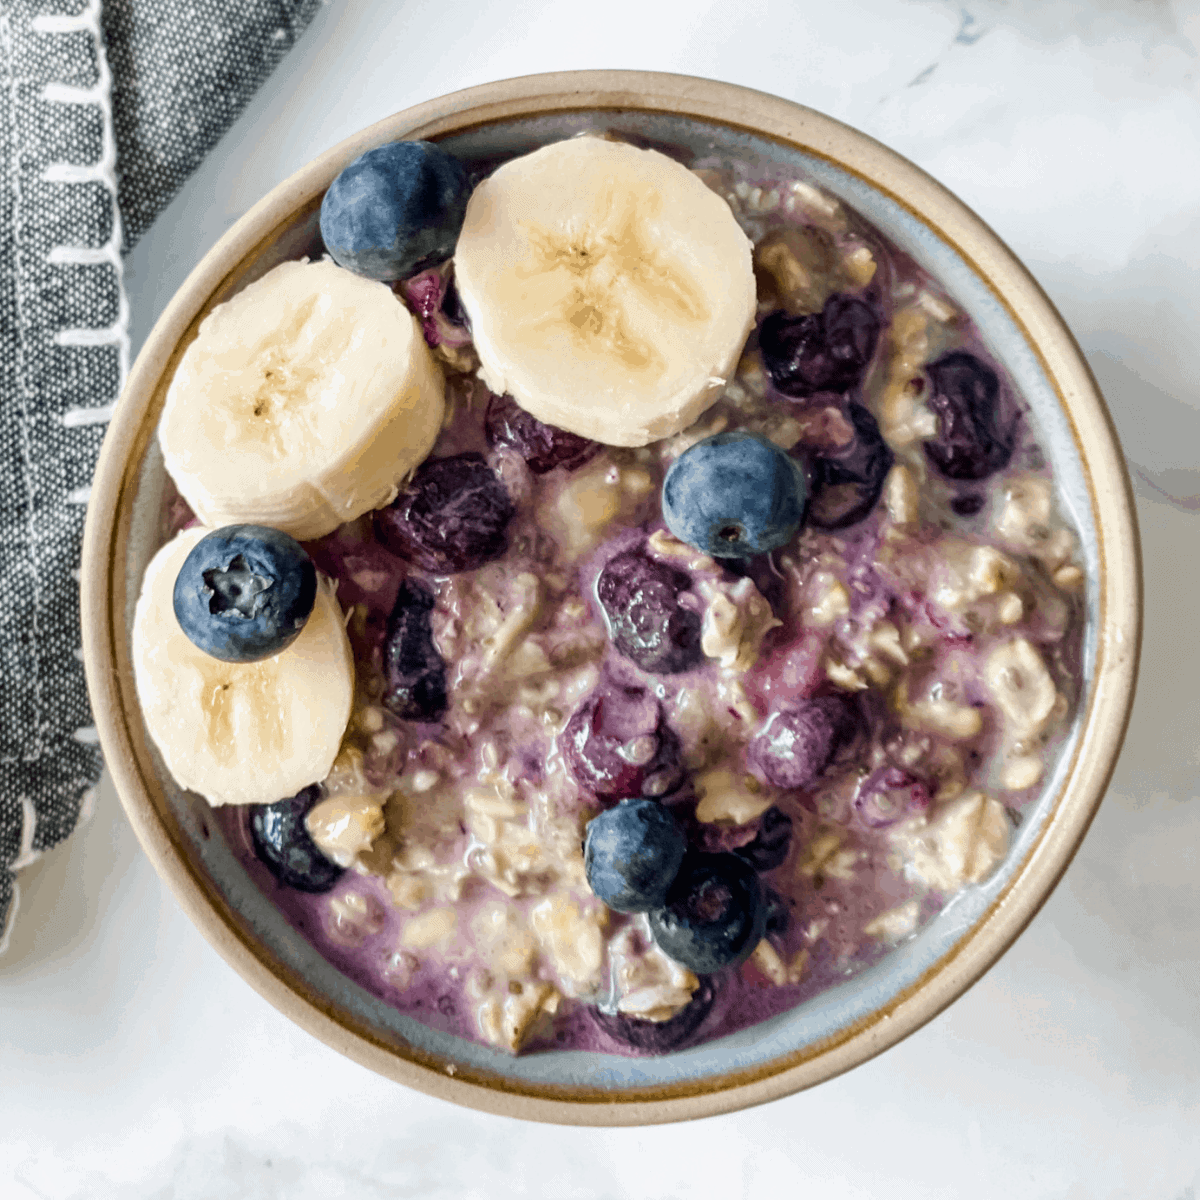 blueberry overnight oats in a bowl